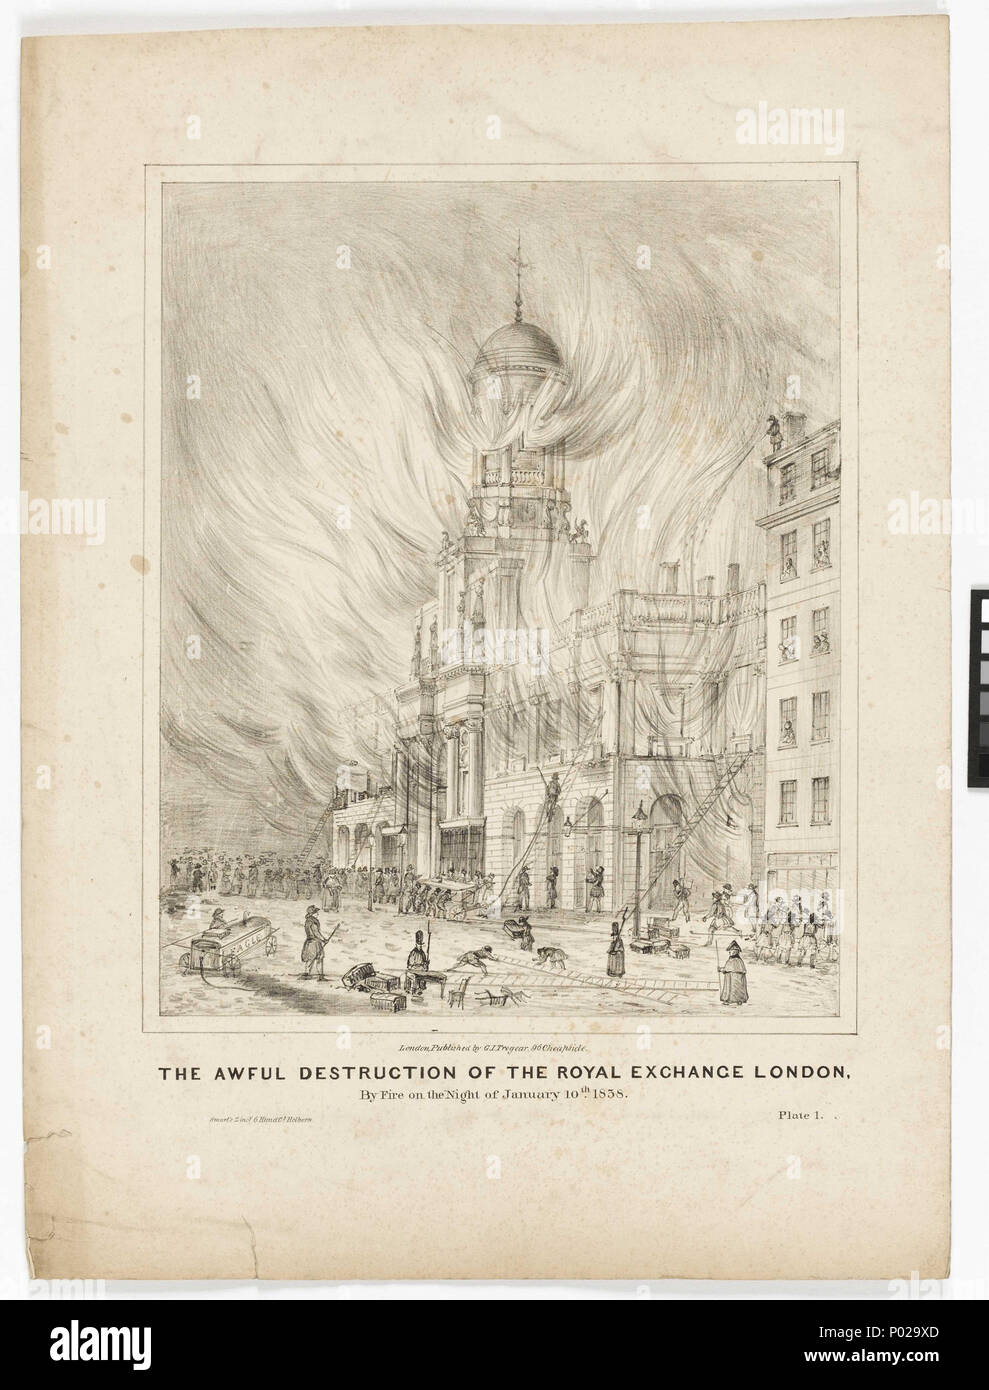 .  English: 'The Awful Destruction of the Royal Exchange London By Fire on the Night of January 10th 1838' The Royal Exchange in Threadneedle Street in the City was established by Thomas Gresham in 1599 as a meeting place for merchants throughout Europe. It was intended as a rival to an equivalent meeting place in Antwerp called the Bourse. It became the Royal Exchange in 1571 under Elizabeth I. The Exchange had been destroyed once before by fire in the 1666 fire of London and rebuilt by City Surveyor Edward Jerman. In this second fire of 1838 the buildings were once again destroyed when a fir - Stock Image